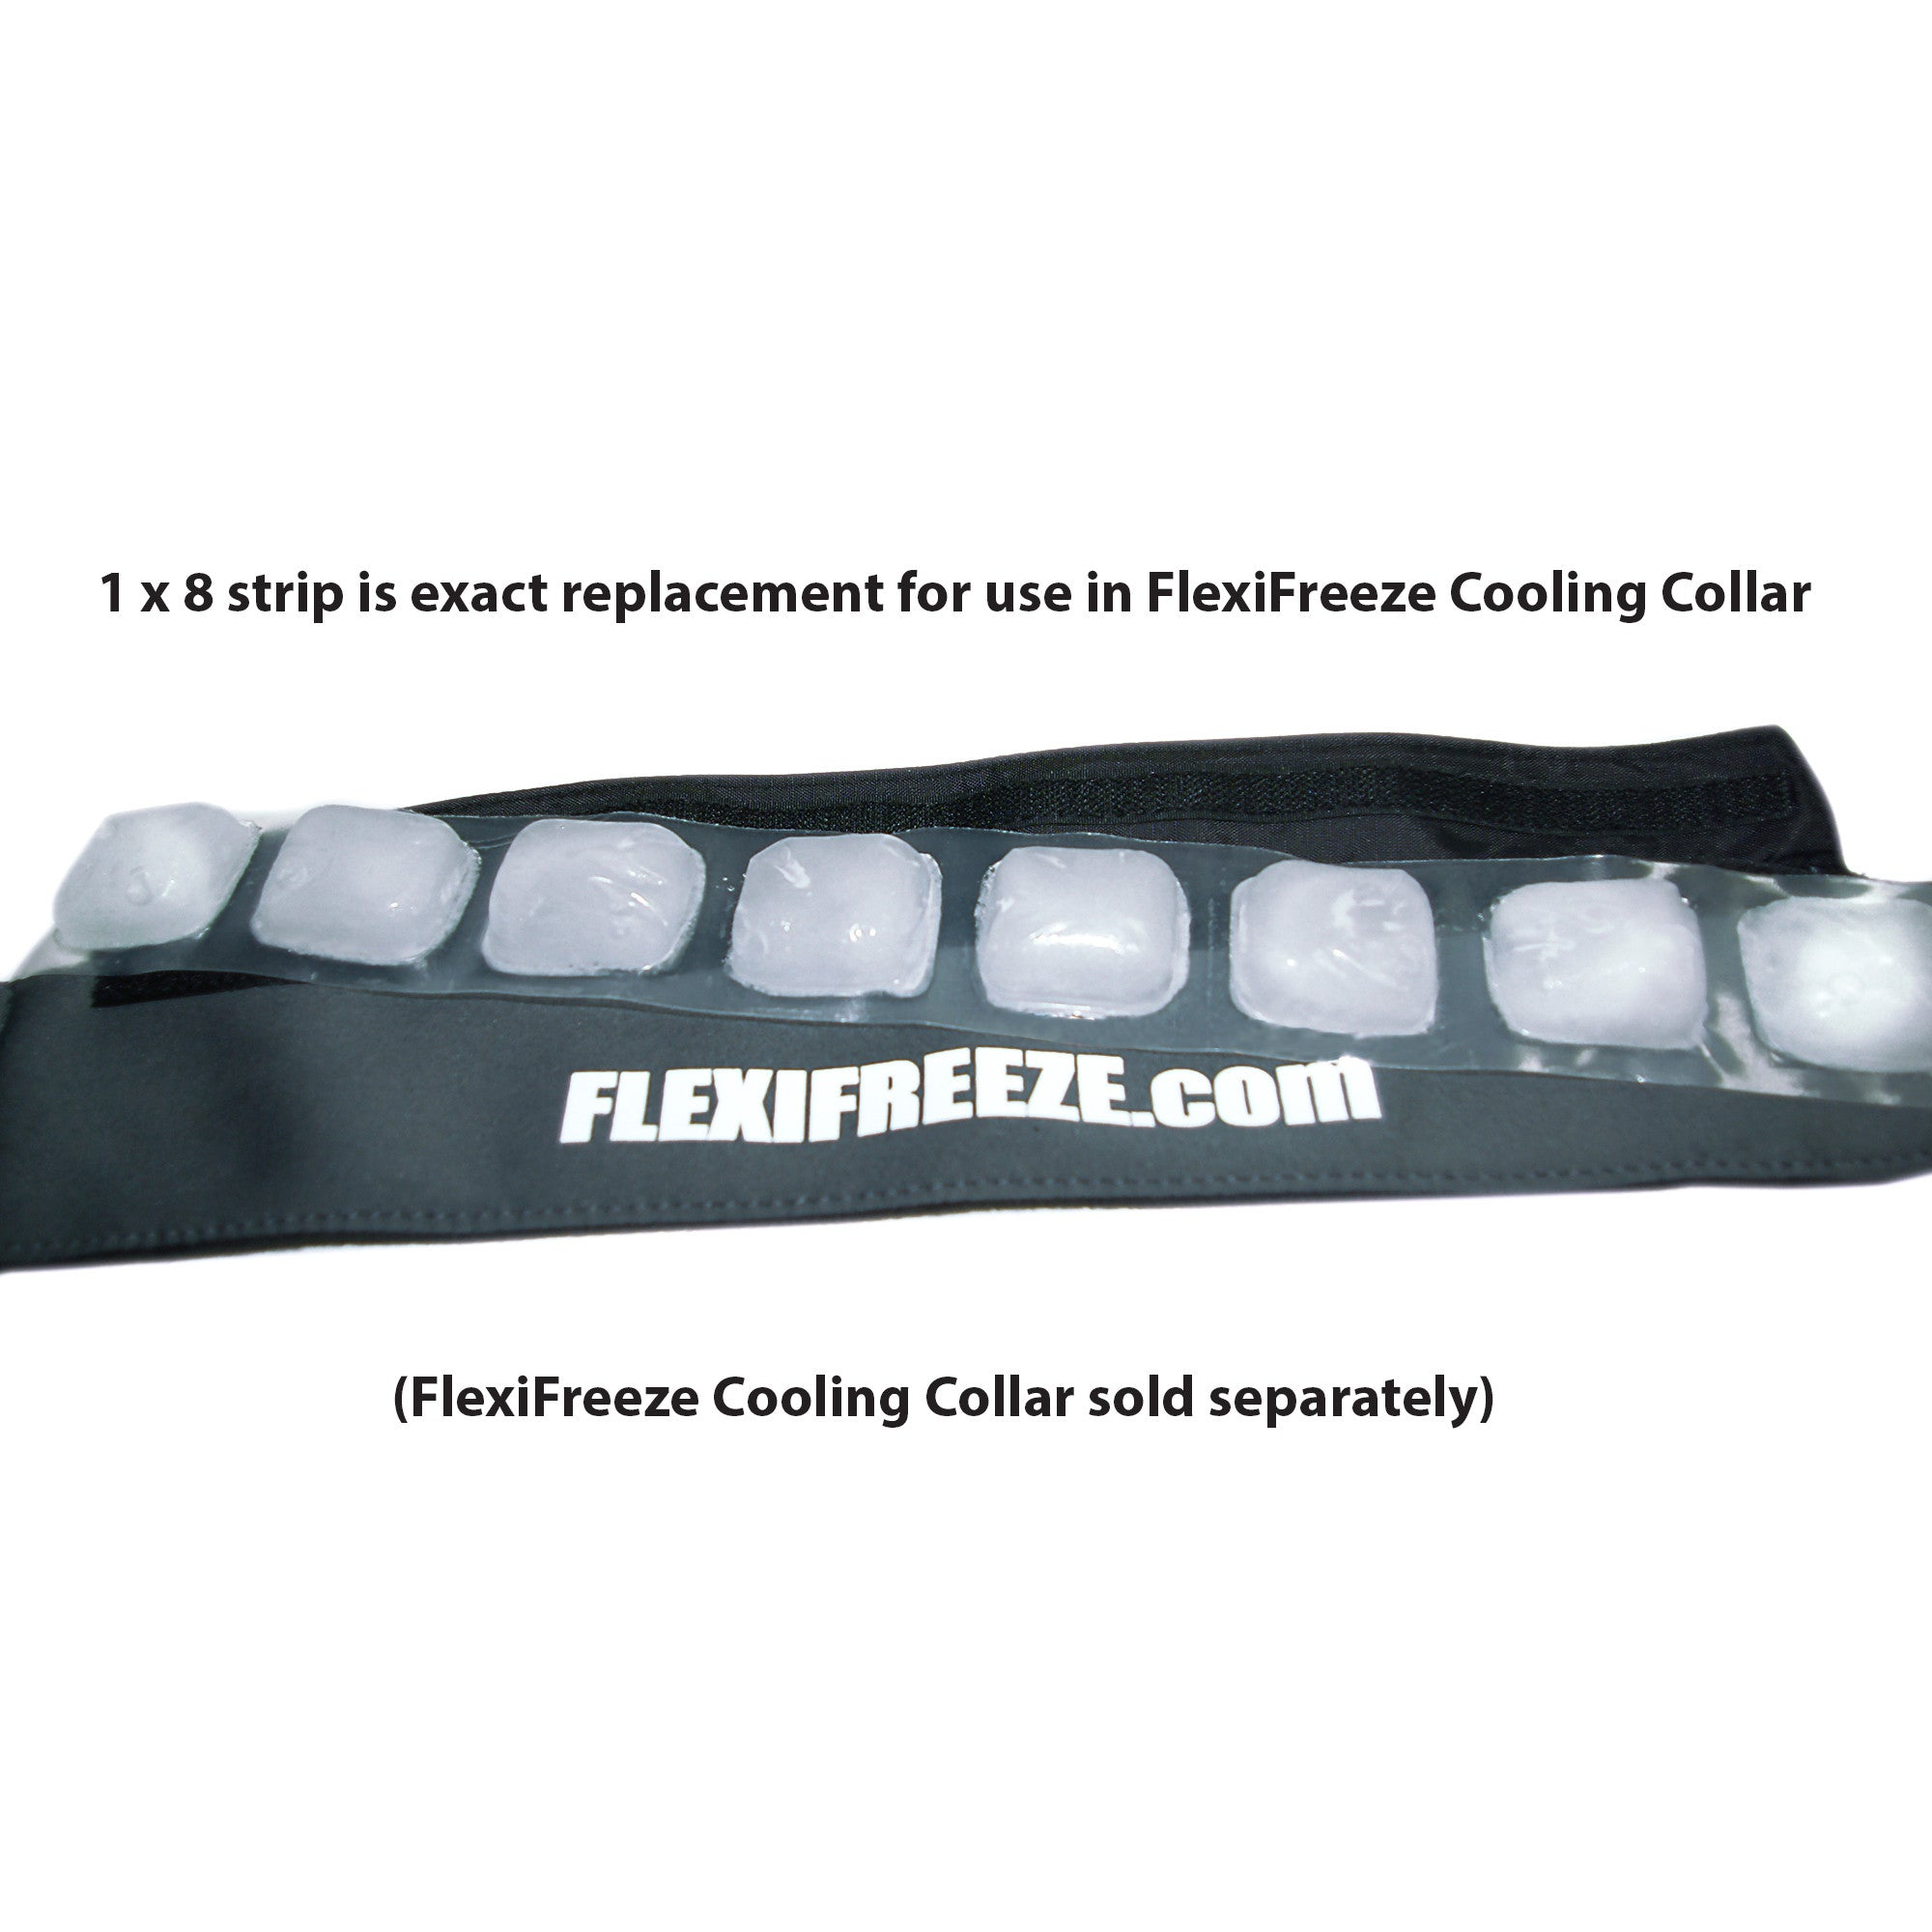 FlexiFreeze 8 cube ice strip, Bulk 100 count